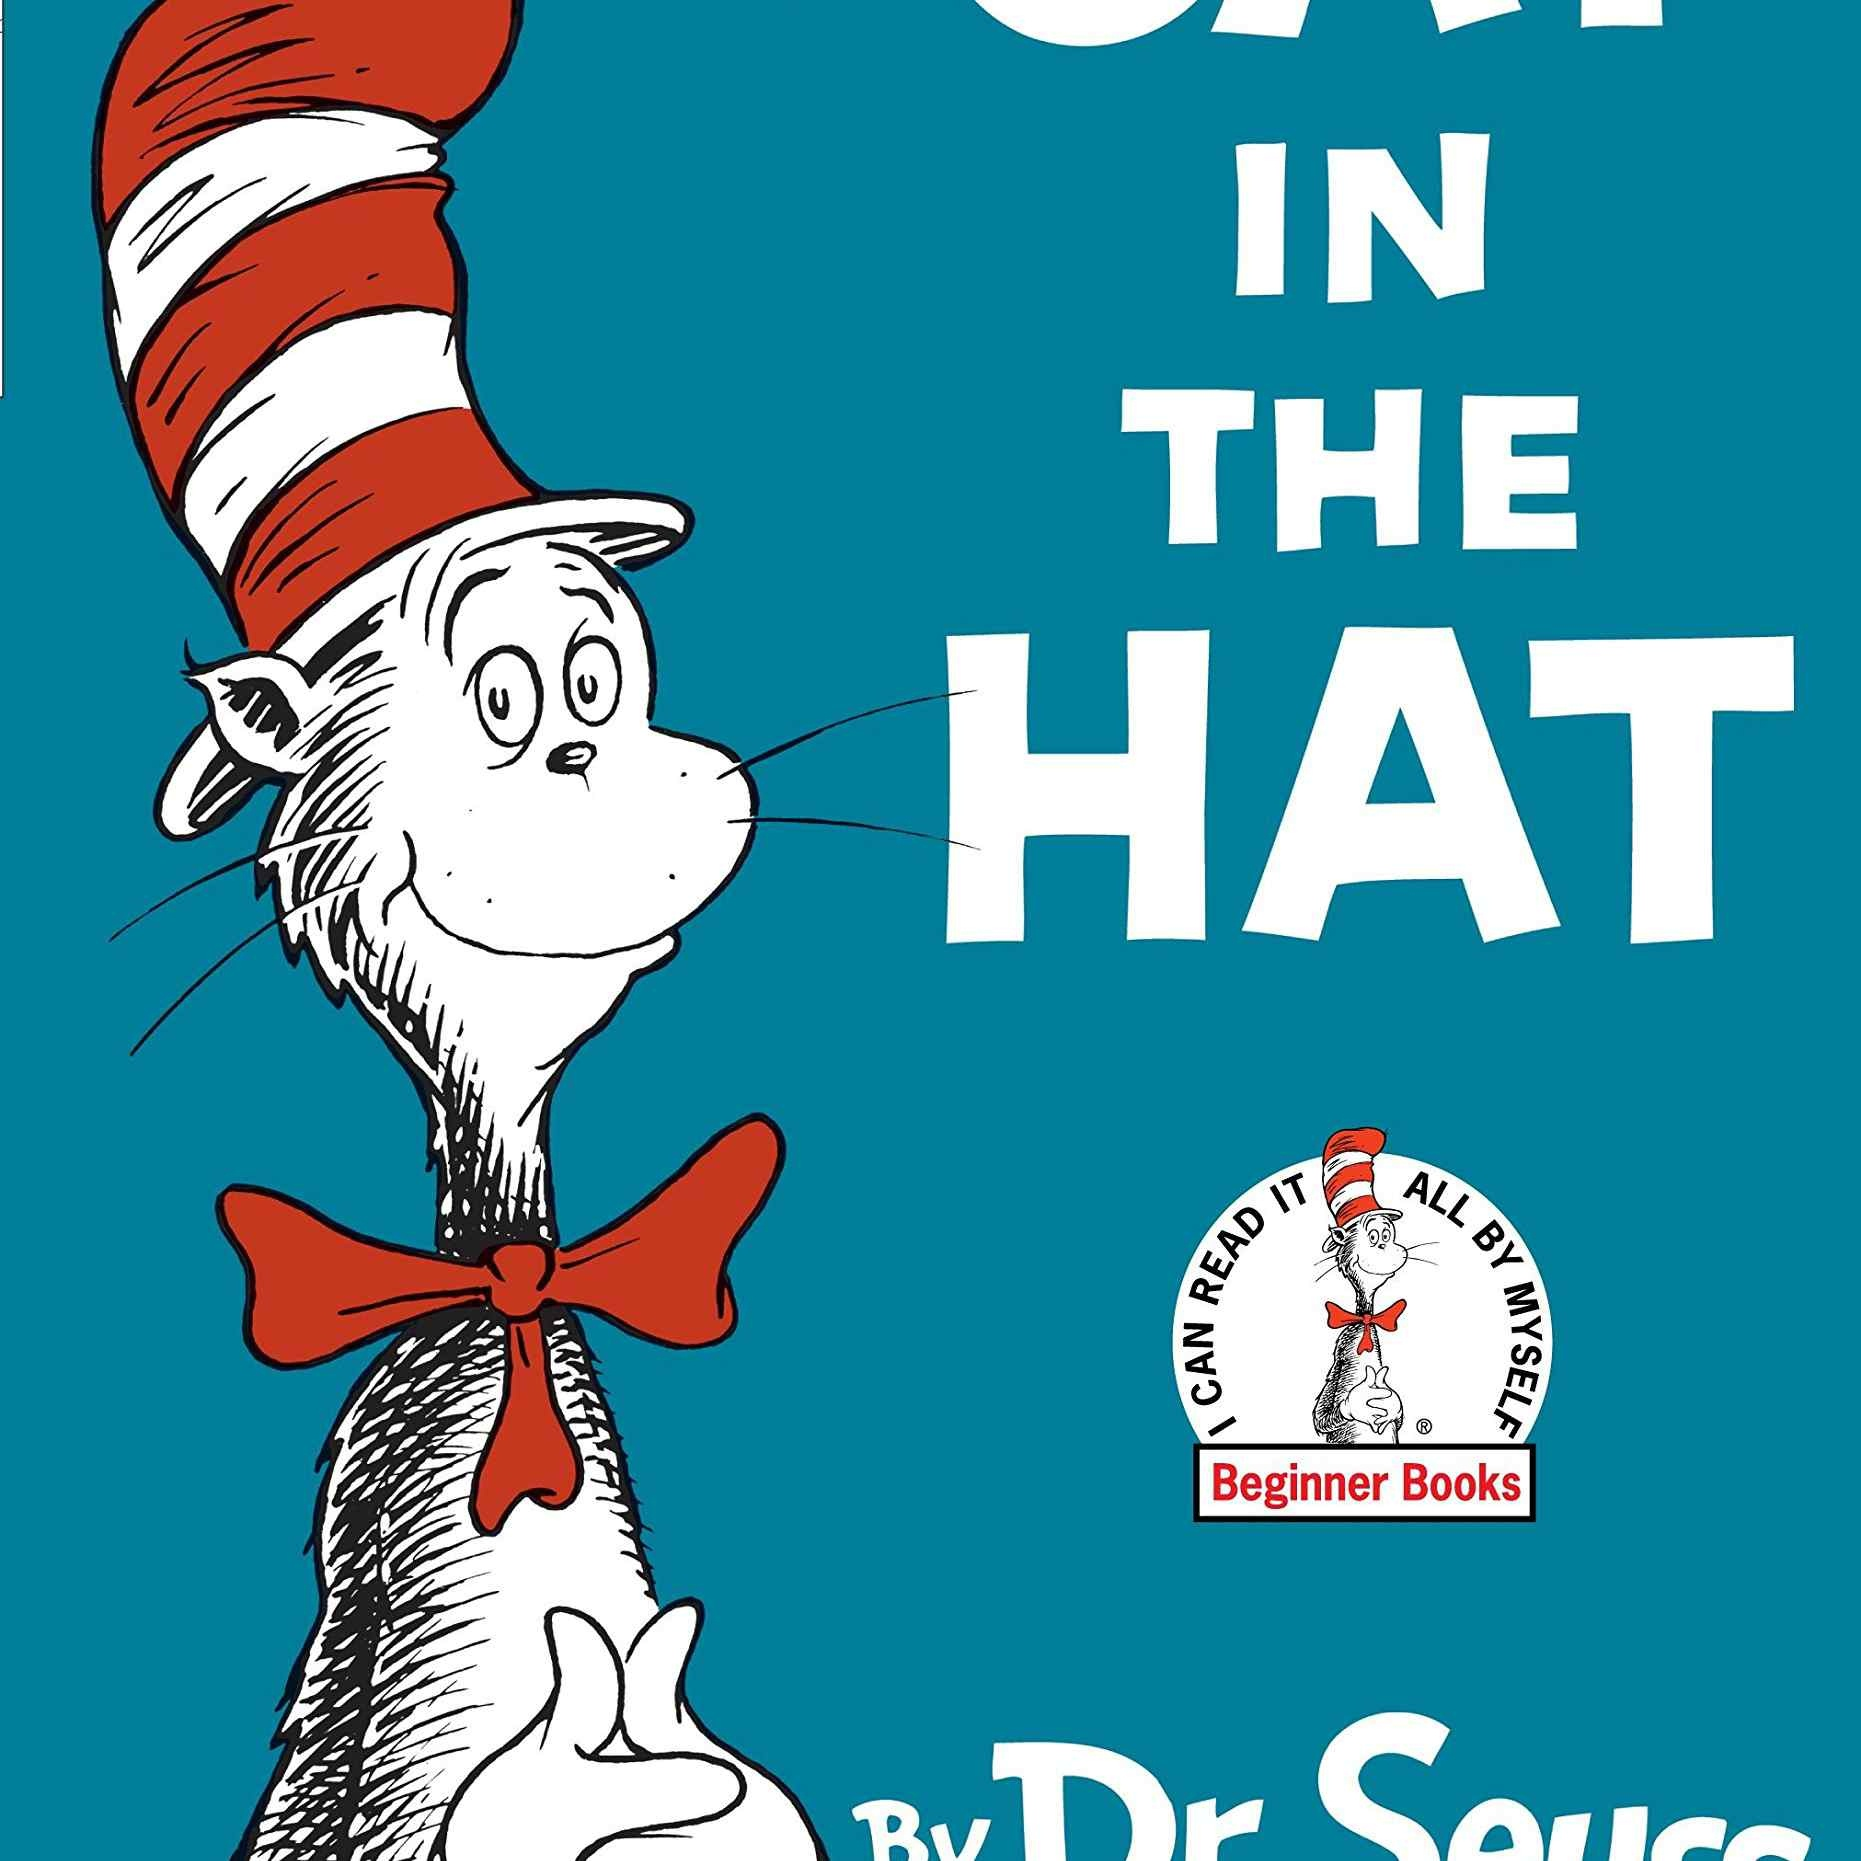 Printable Dr. Seuss Worksheets And Coloring Sheets - Cat In The Hat Free Printable Worksheets